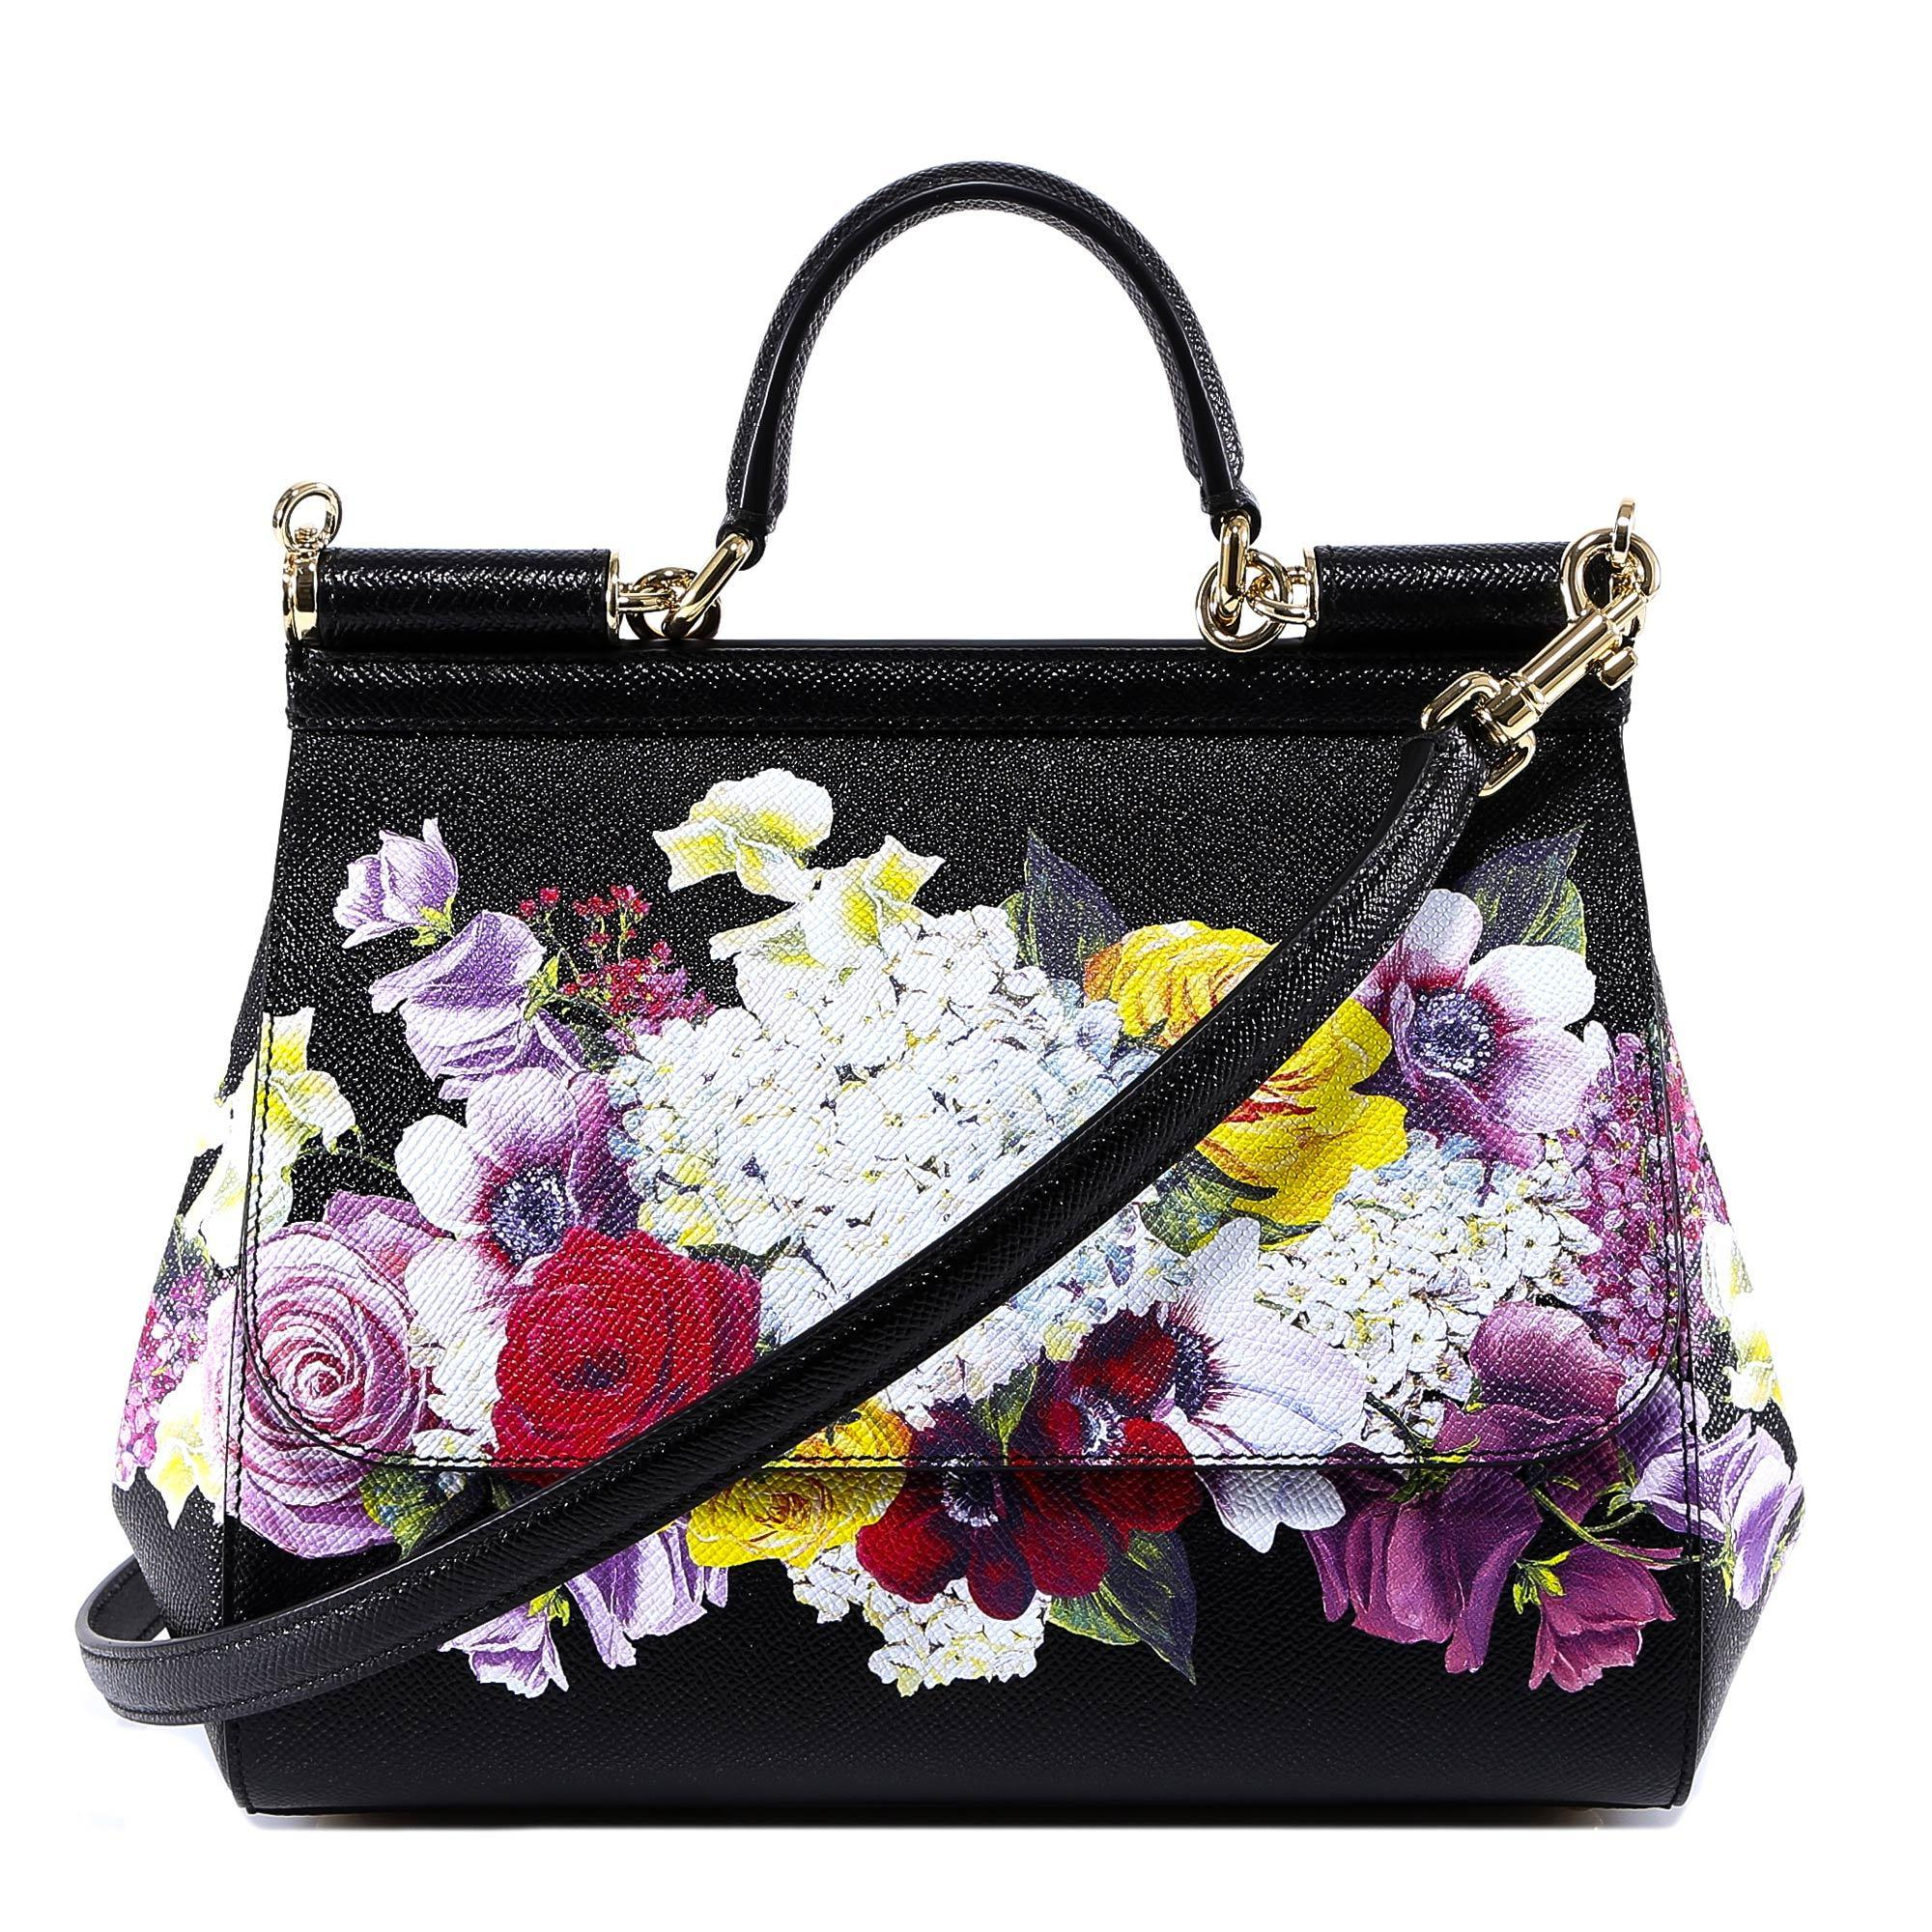 Dolce   Gabbana. Women s Floral Top Handle Tote Bag c6a2e66906bcd